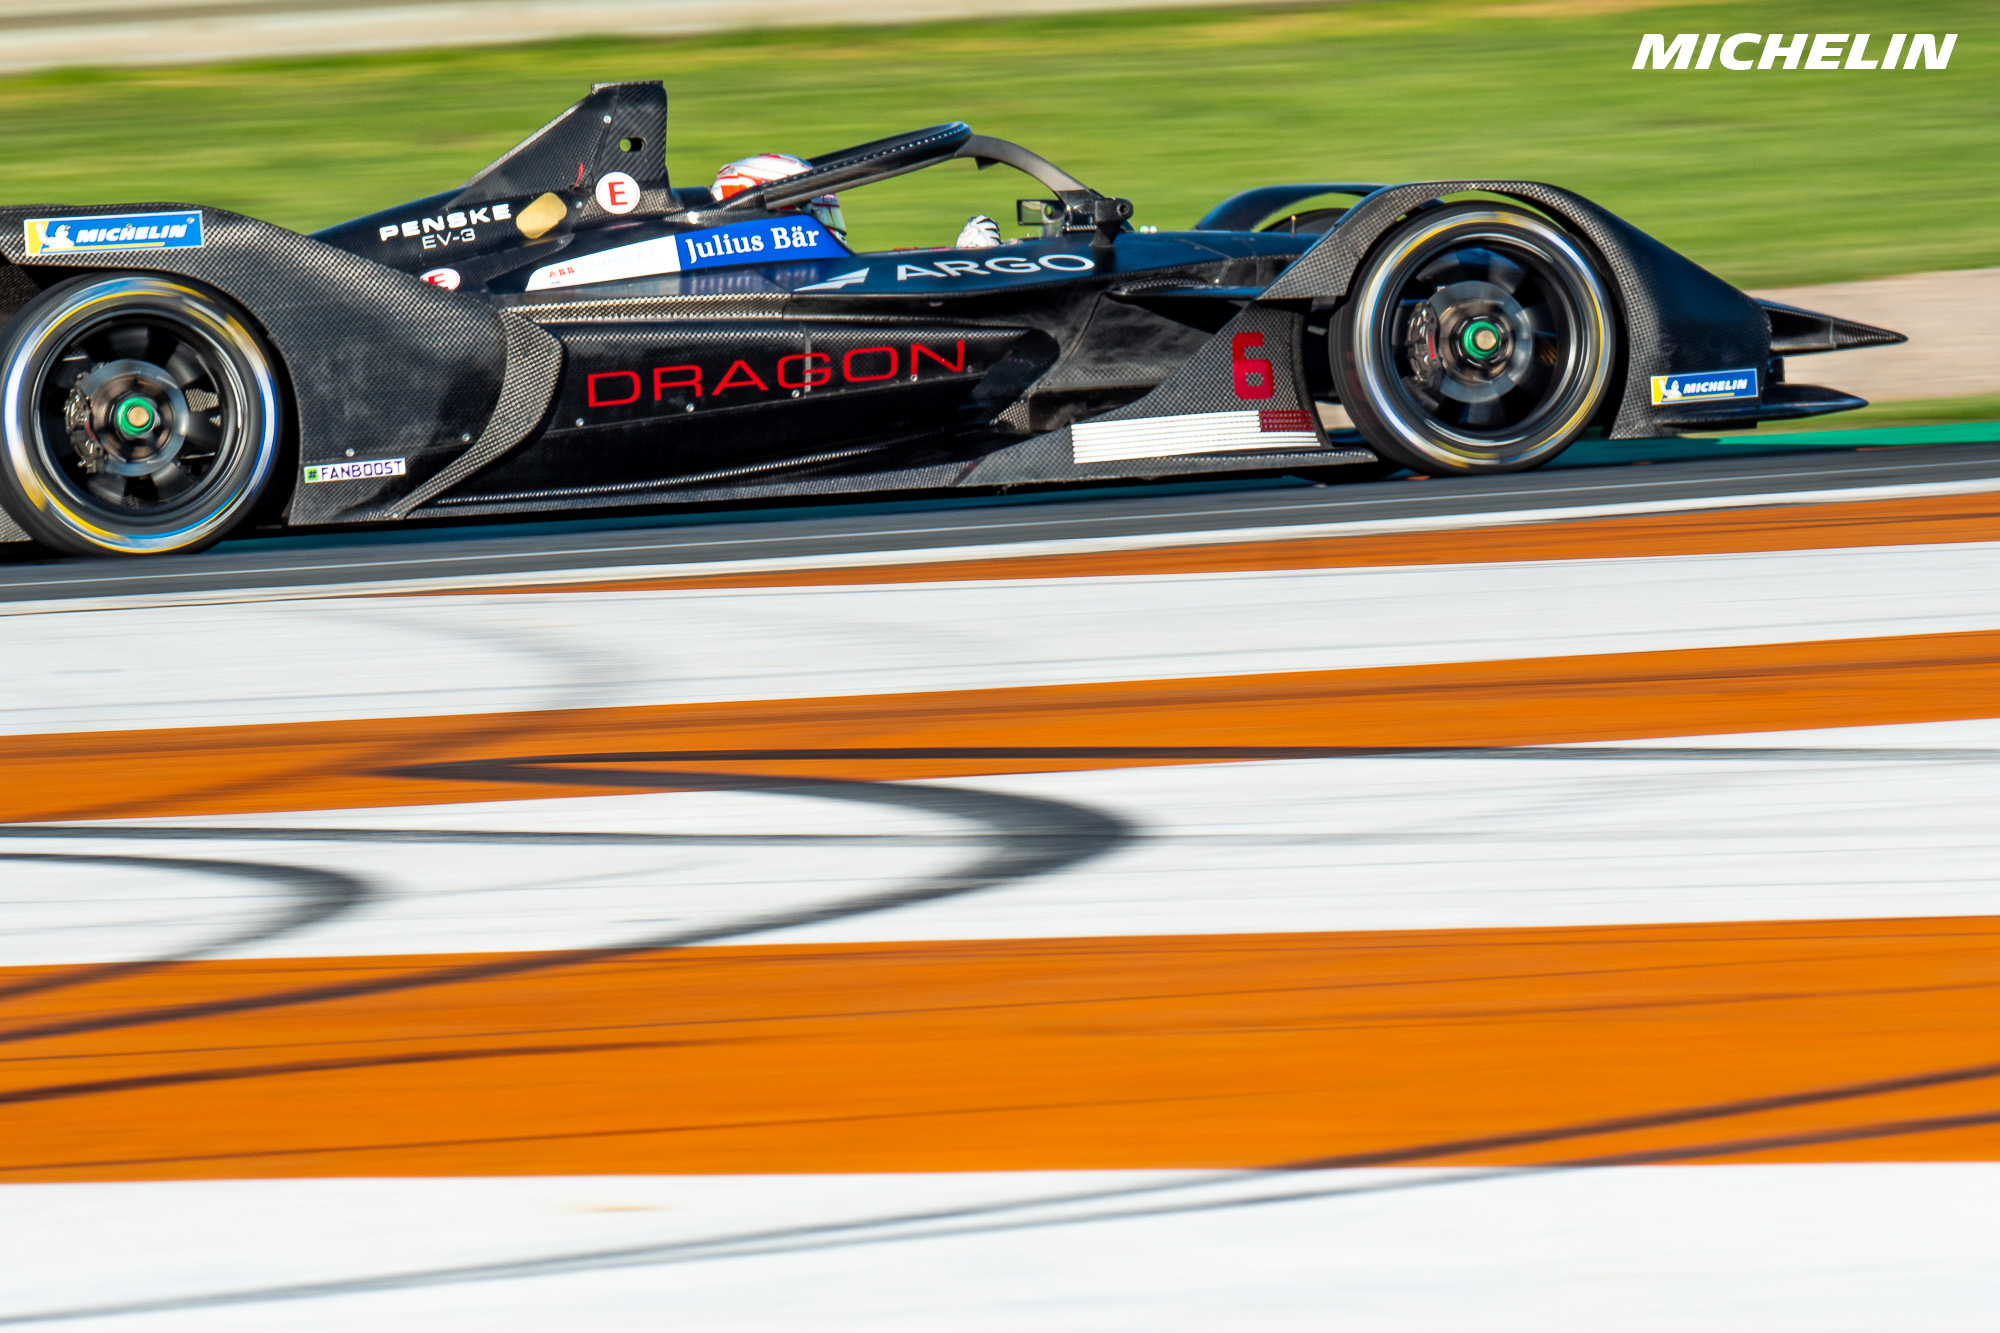 FIA Formula E: Michelin and the Gen2 cars in action at Valencia